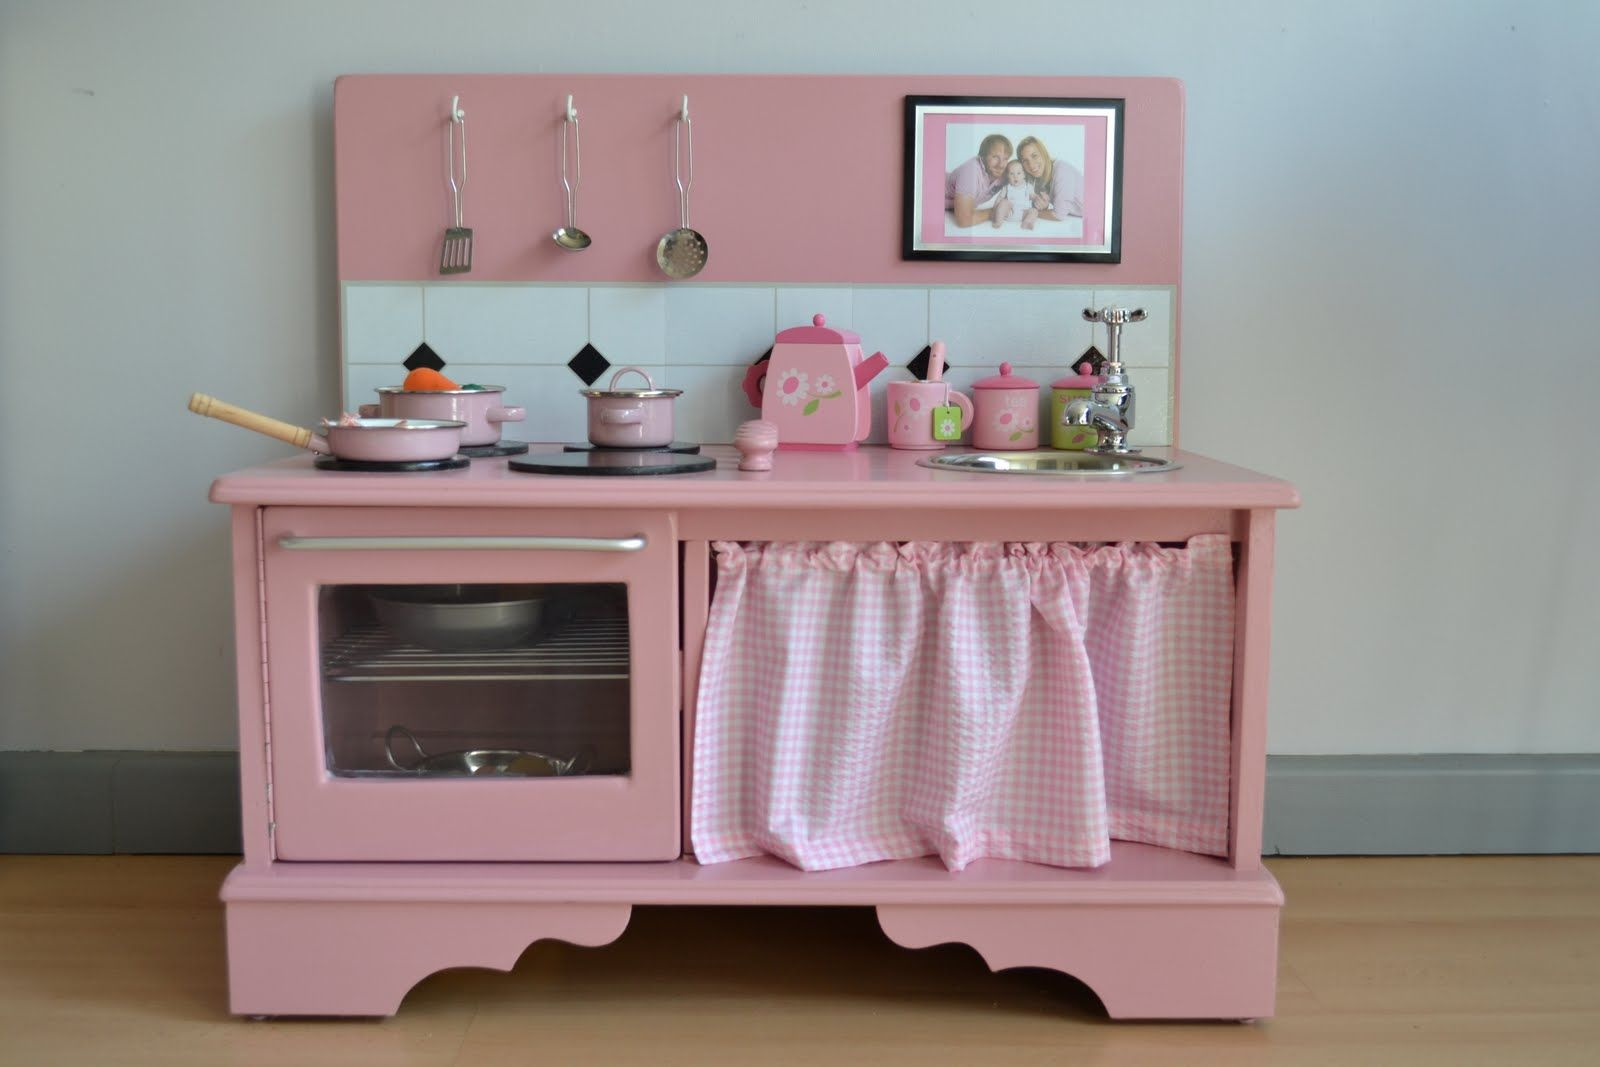 Kitchen Made Out Of Old Dresser Awesome Going To Do It Kids Play Kitchen Wooden Play Kitchen Diy Play Kitchen